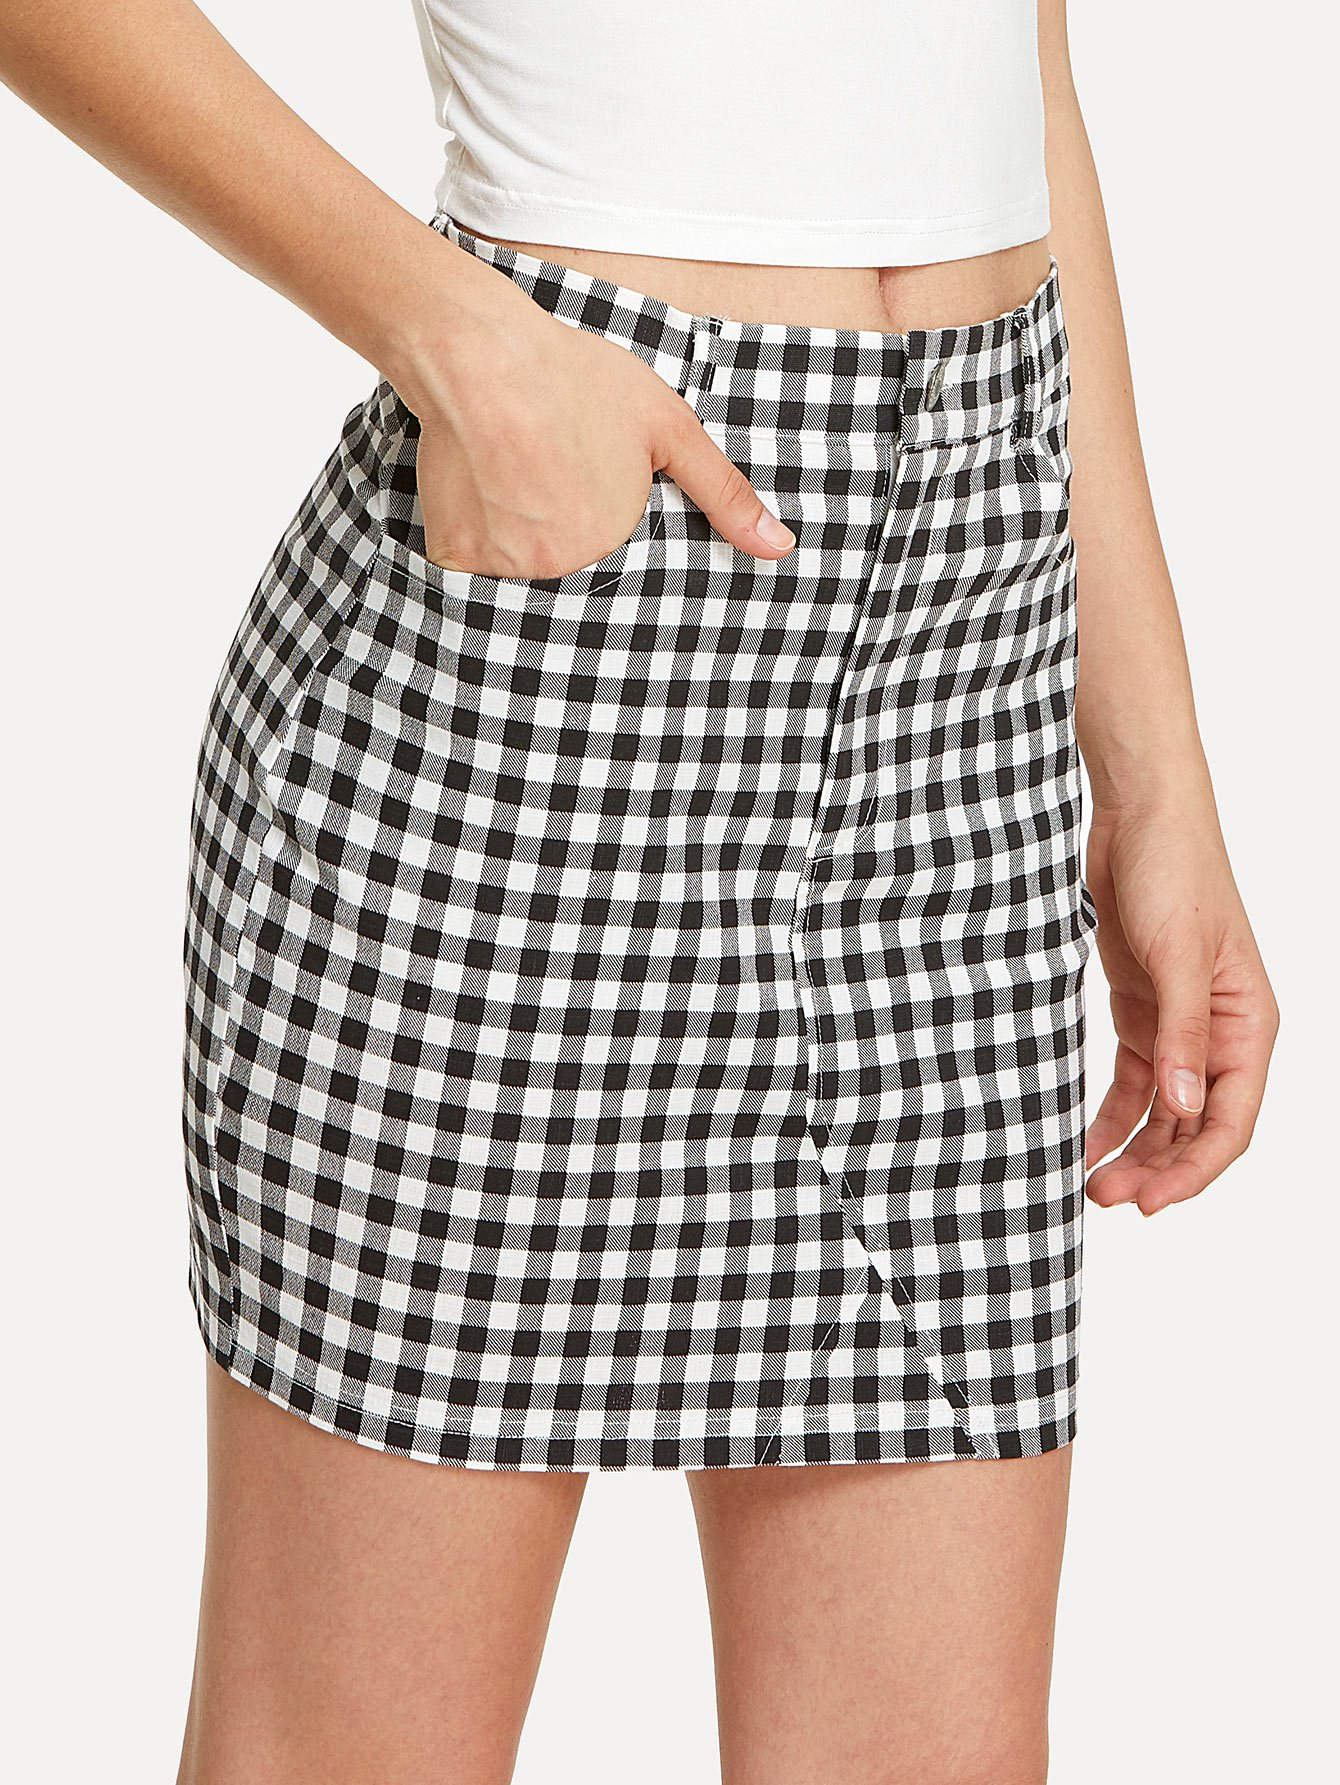 Pocket Front Fitted Plaid Skirt lace insert fitted faux leather skirt